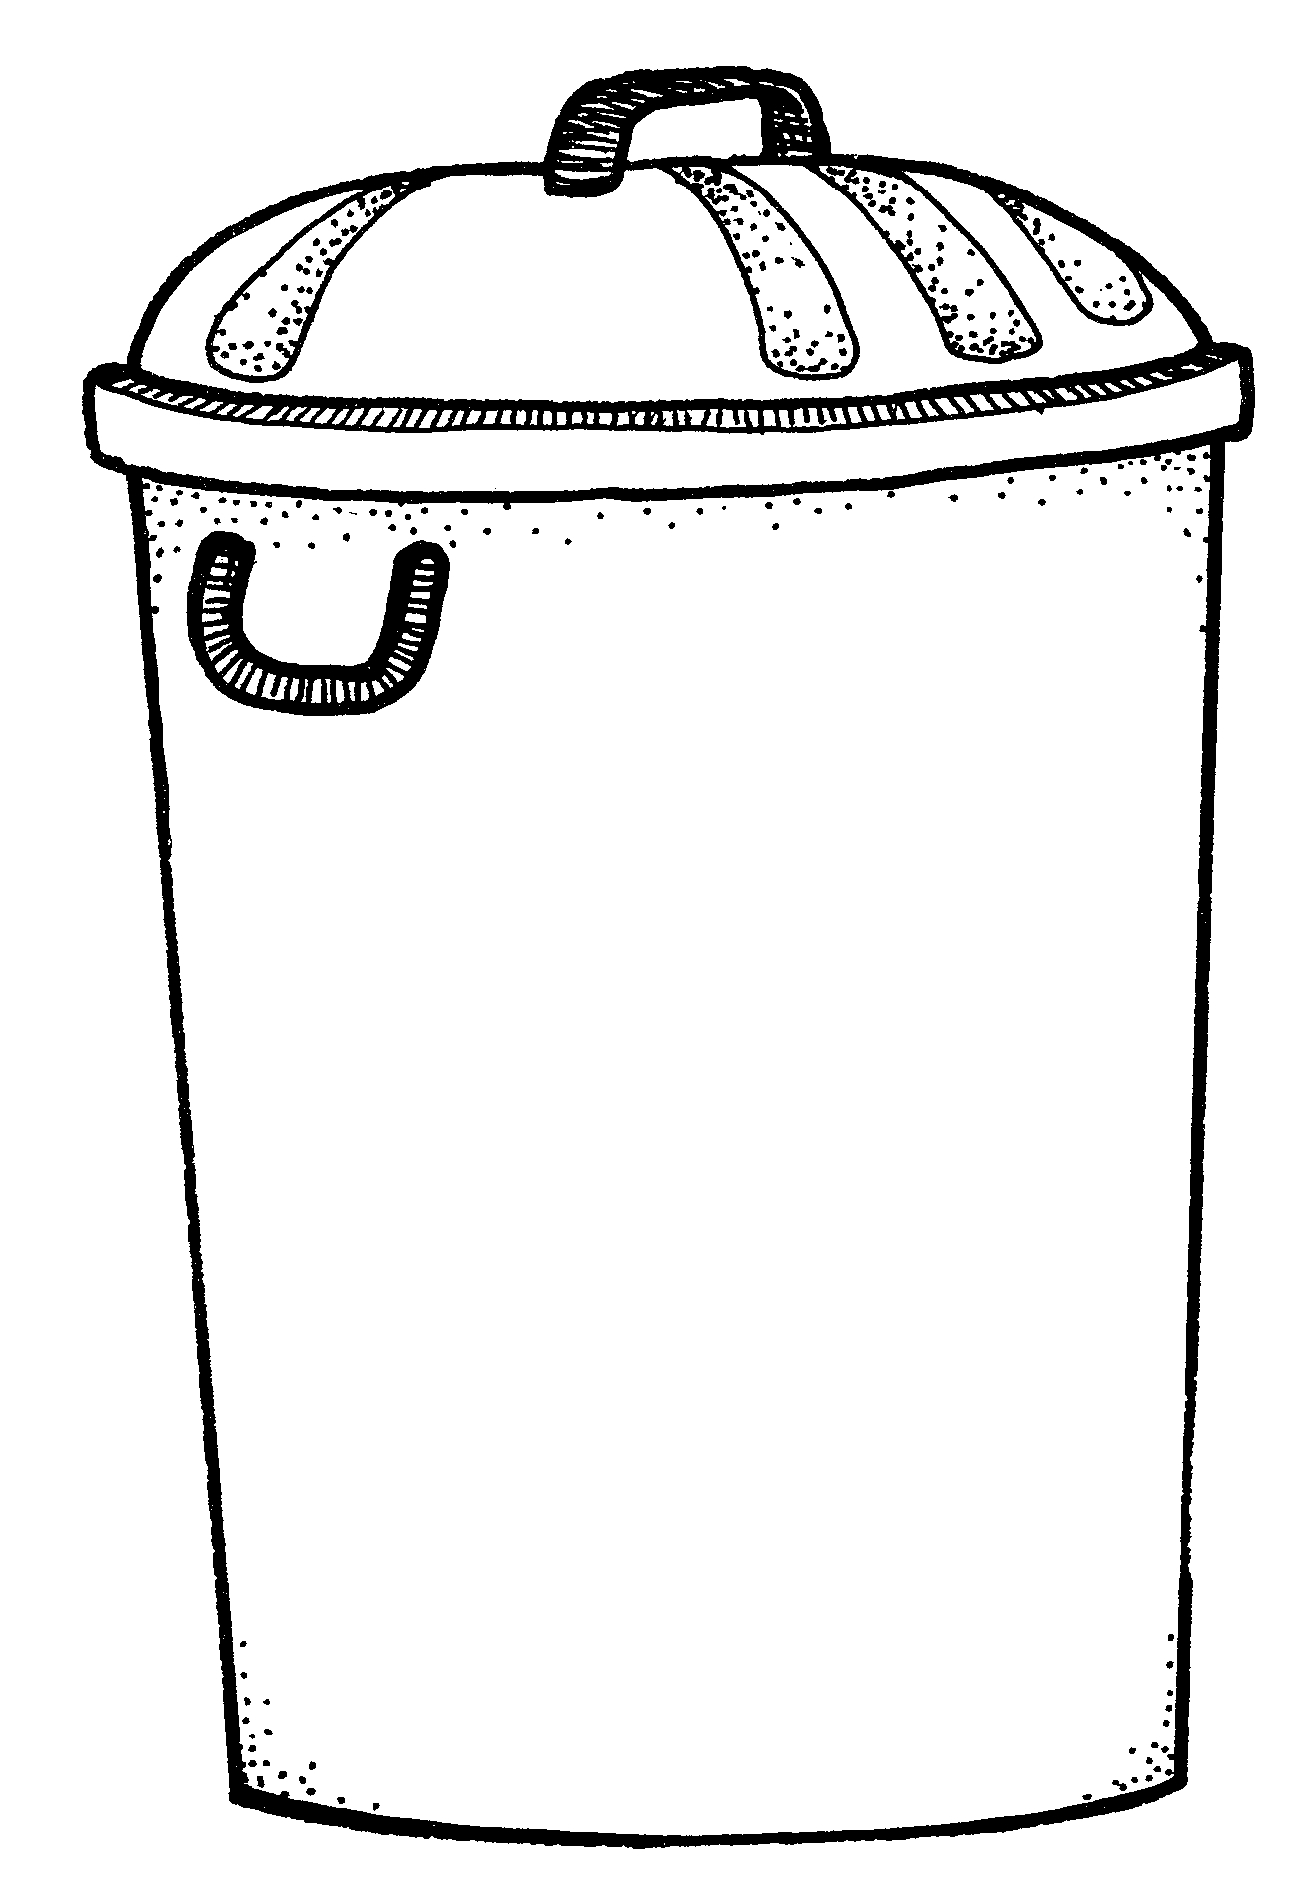 black and white trash can Colouring Pages